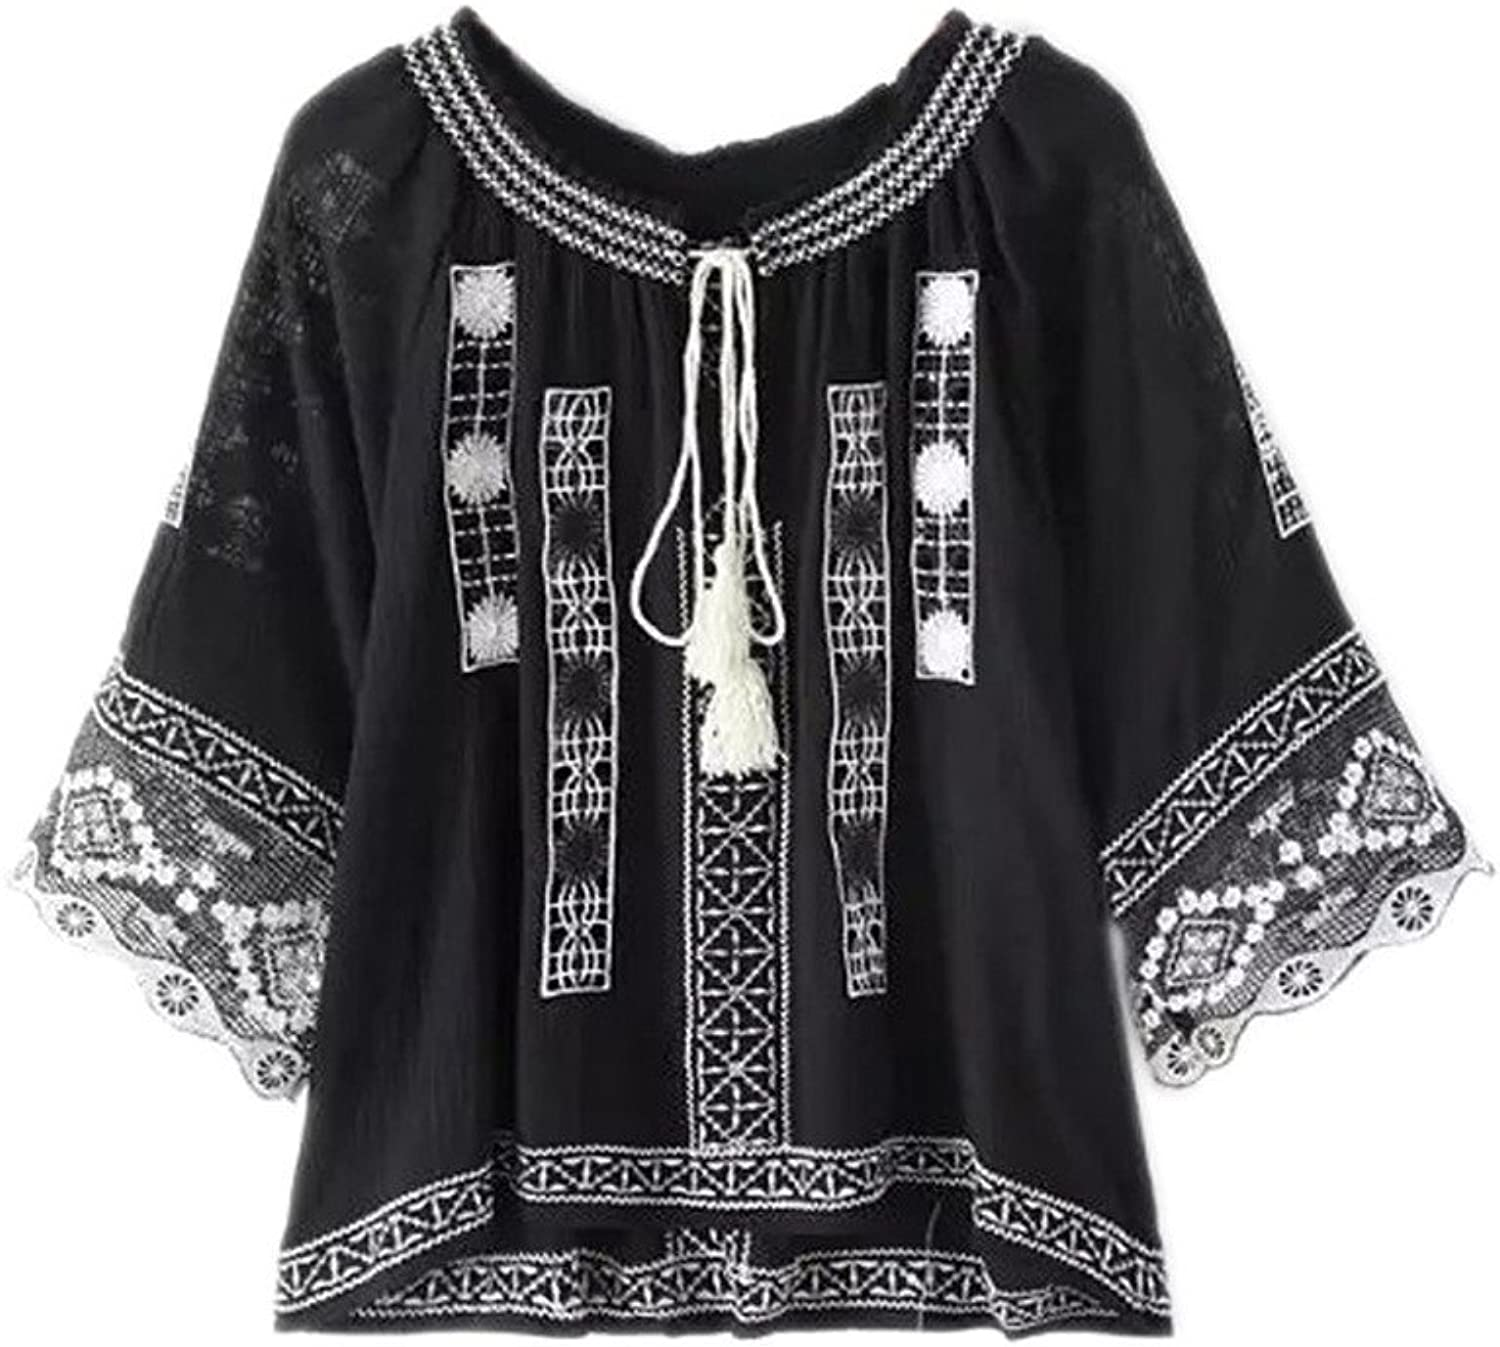 Joeoy Women's Bohemian Embroidered 3 4 Sleeve Peasant Blouse Shirt